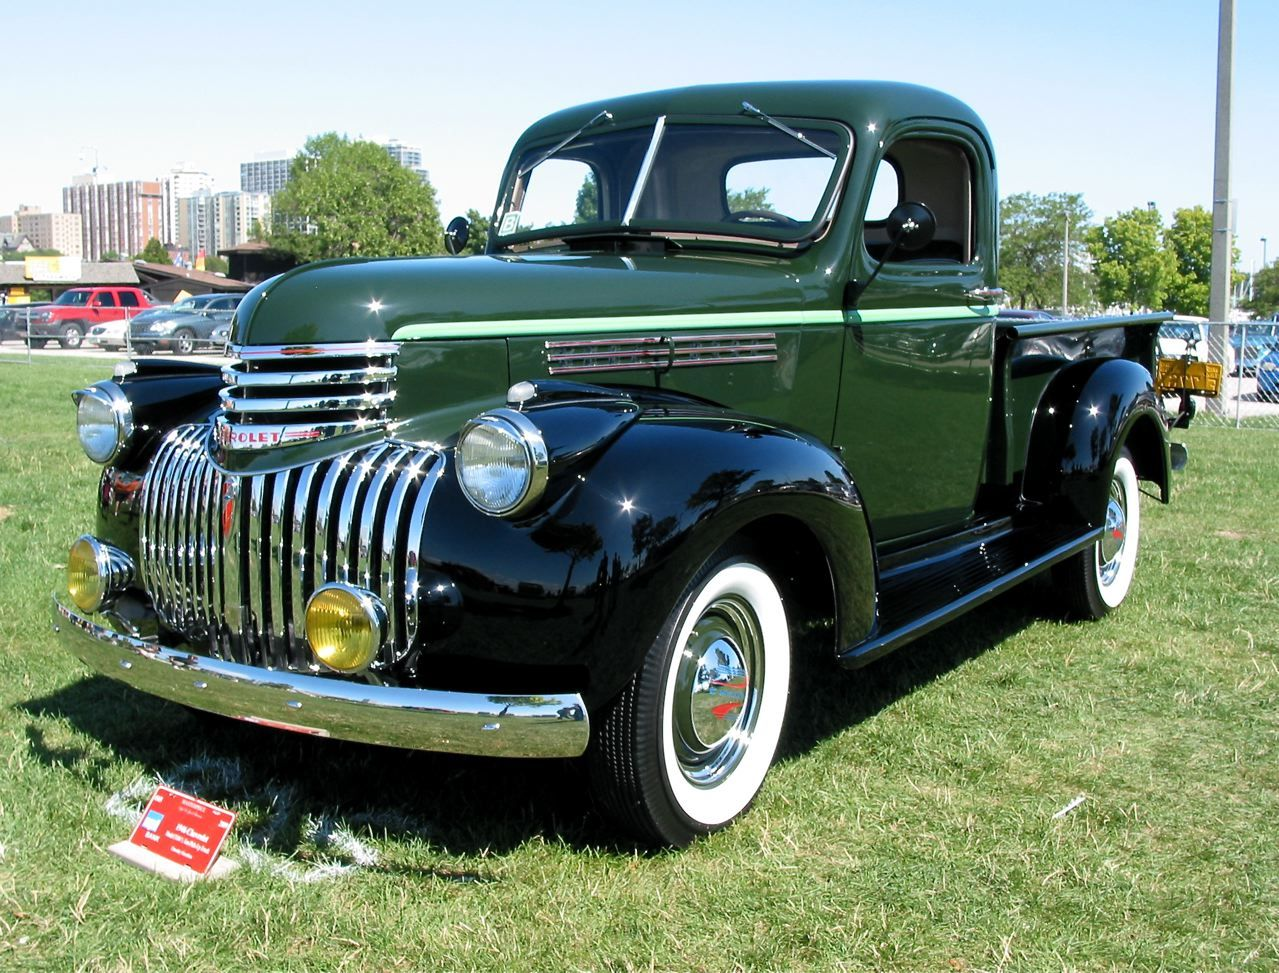 46 Chevrolet truck. great color combo